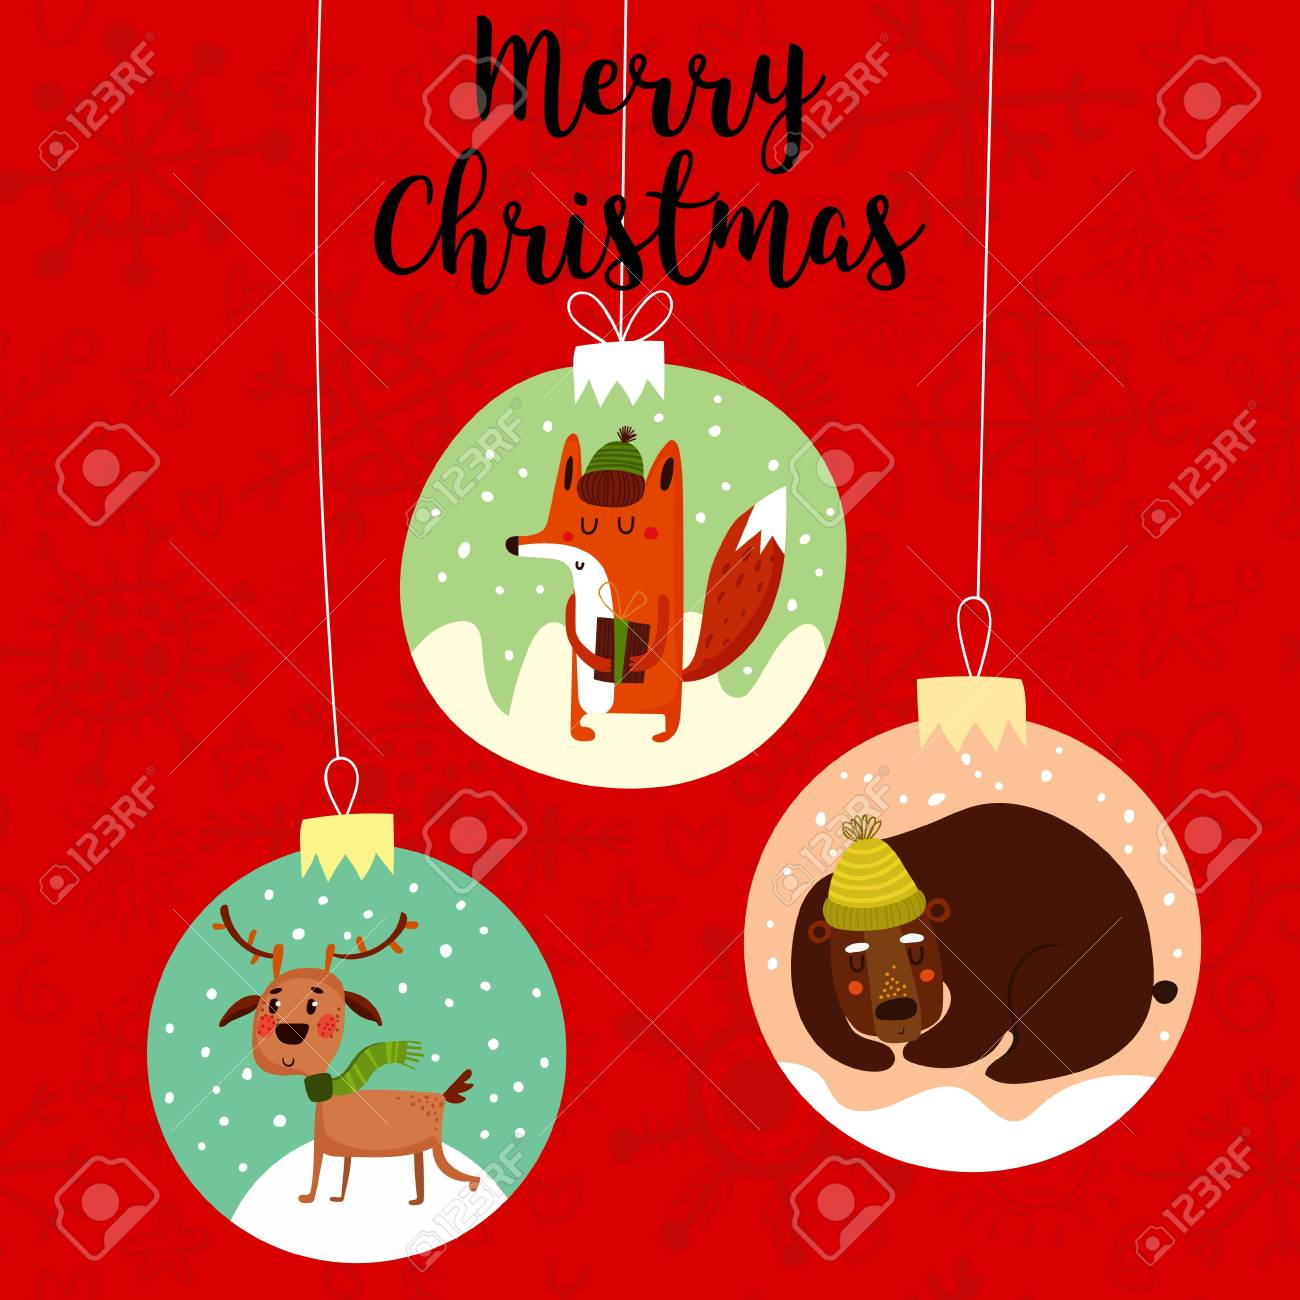 Funny Merry Christmas.Funny Merry Christmas Card Stylish Holiday Card With Cute Fox Deer